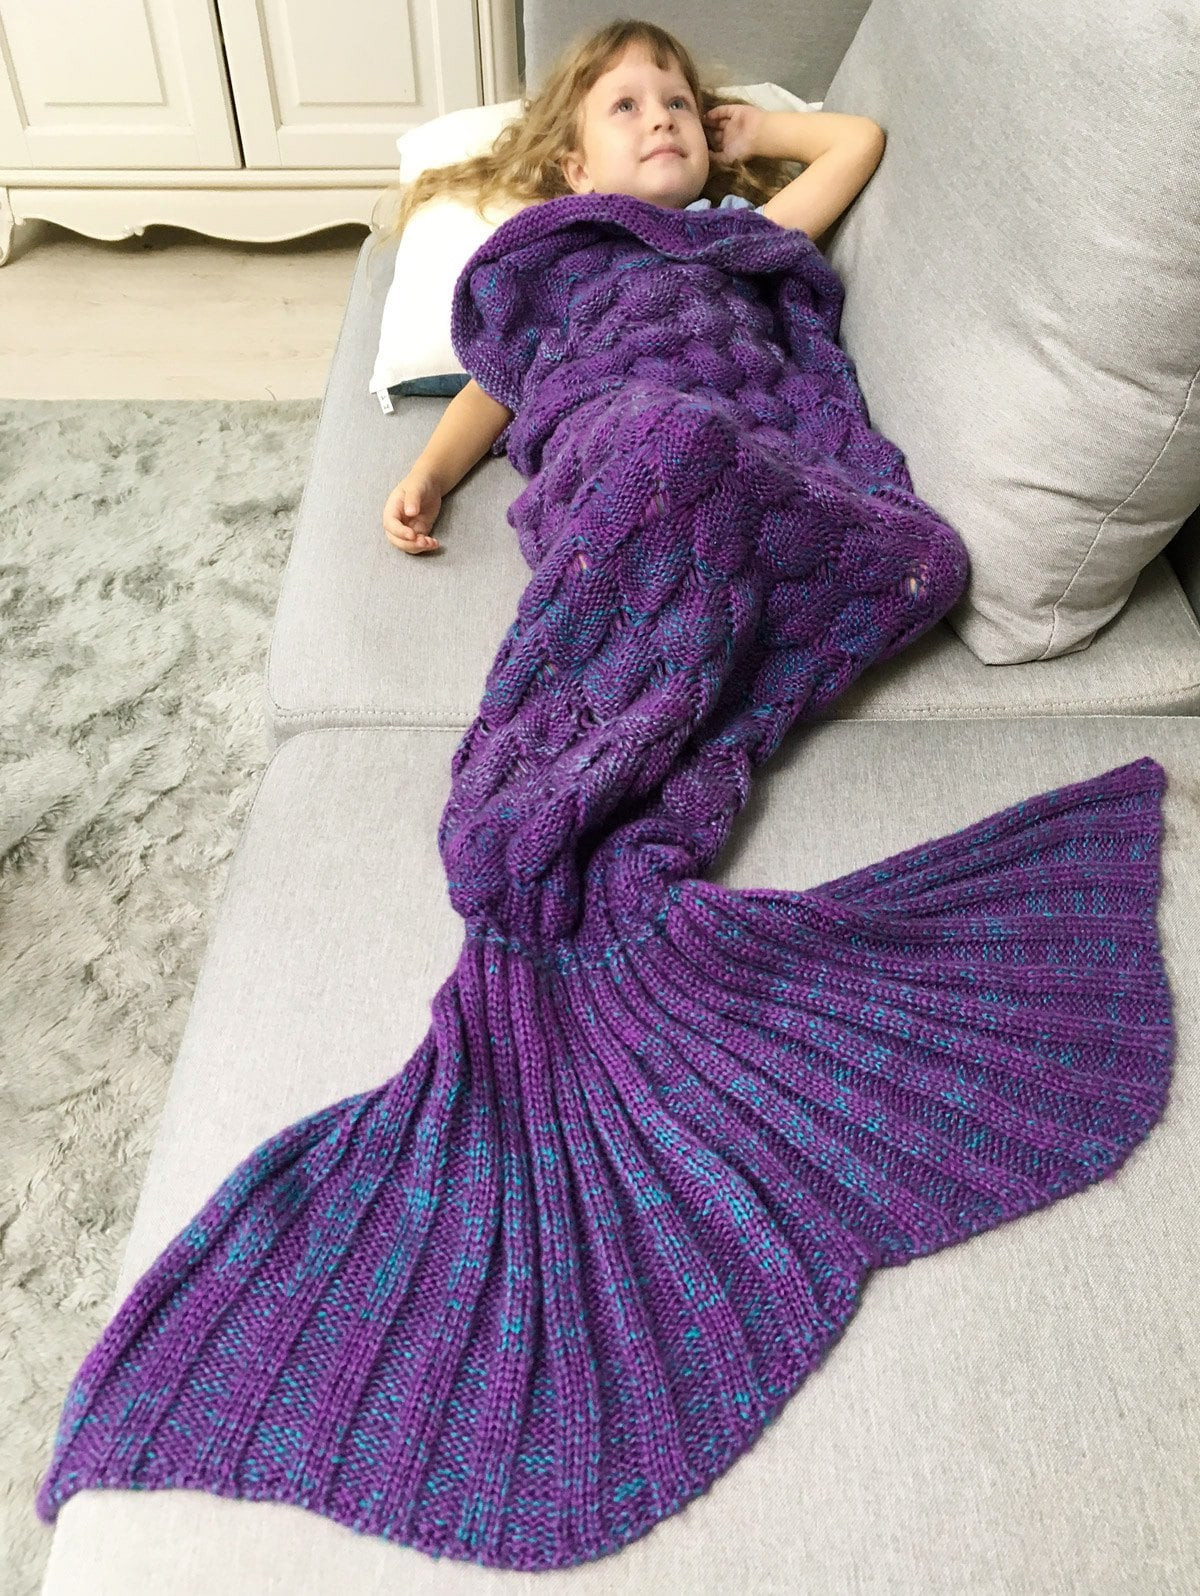 Crochet Mermaid Blanket Awesome Chunky Crochet Knit Mermaid Blanket Throw for Kids Purple Of Unique 48 Images Crochet Mermaid Blanket